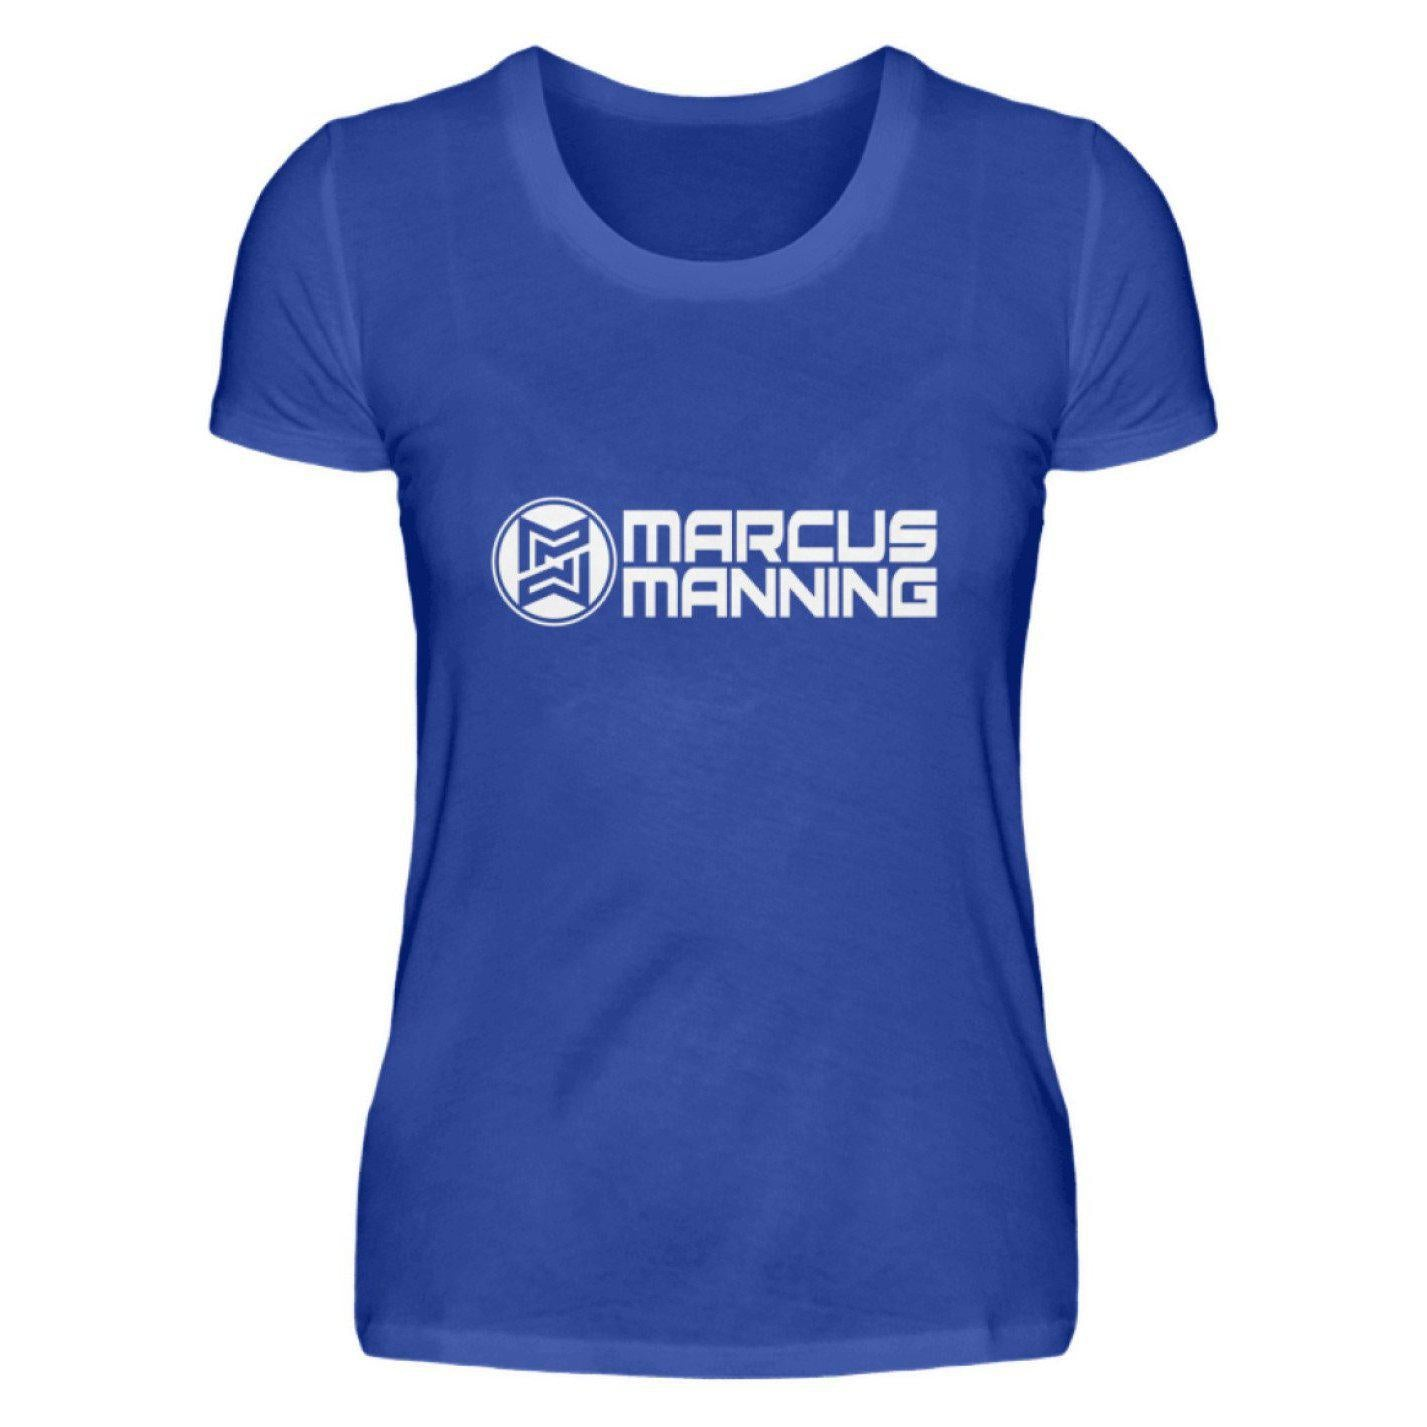 Marcus Manning Black Collection - Damenshirt Damen Basic T-Shirt Neonblau / S - Rave On!® der Club & Techno Szene Shop für Coole Junge Mode Streetwear Style & Fashion Outfits + Sexy Festival 420 Stuff